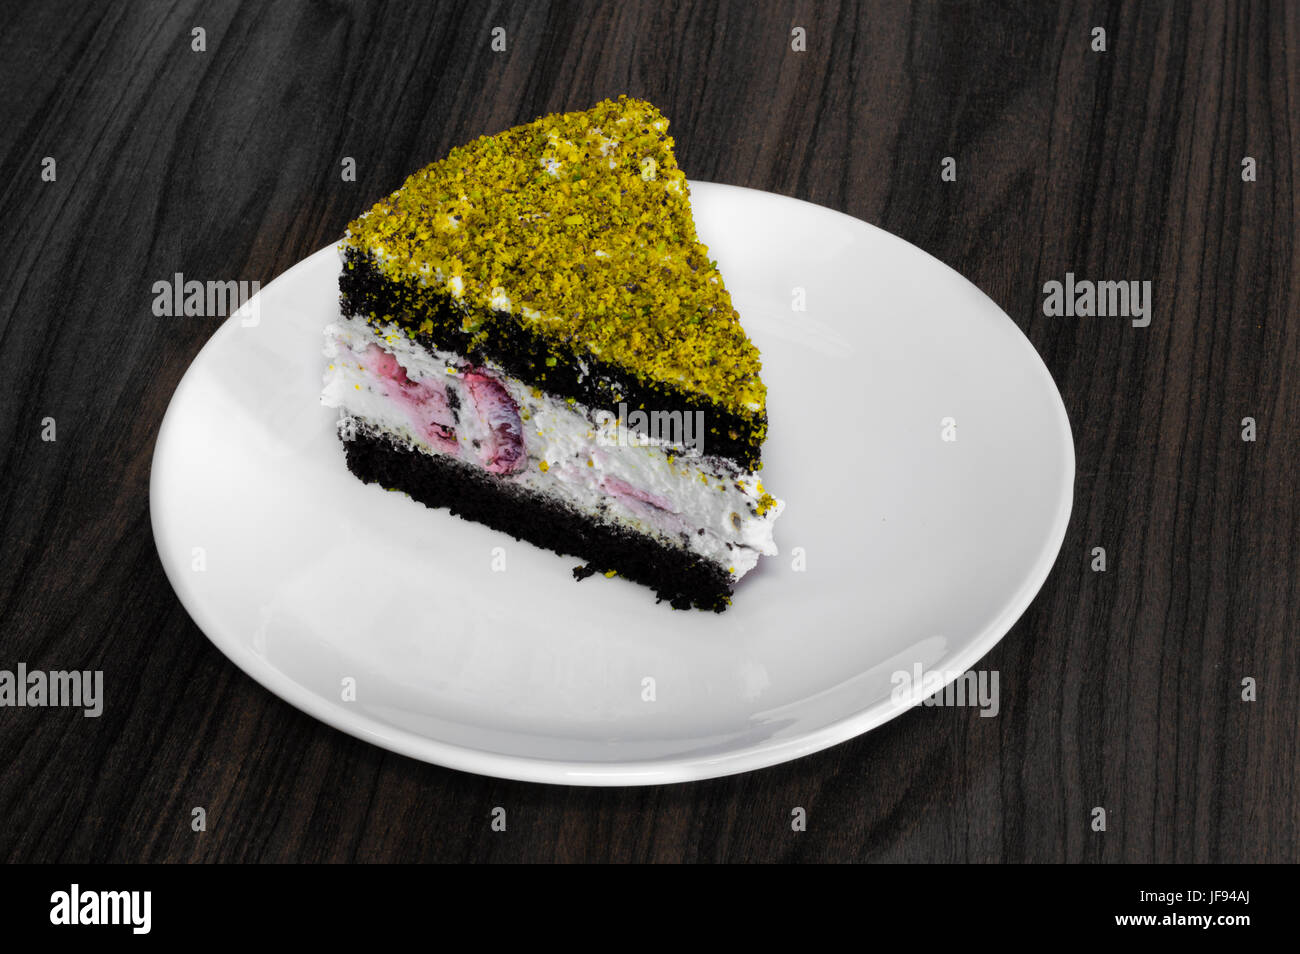 Berry and chocolate cake topped with pistachio served in a white plate on a wooden table - Stock Image